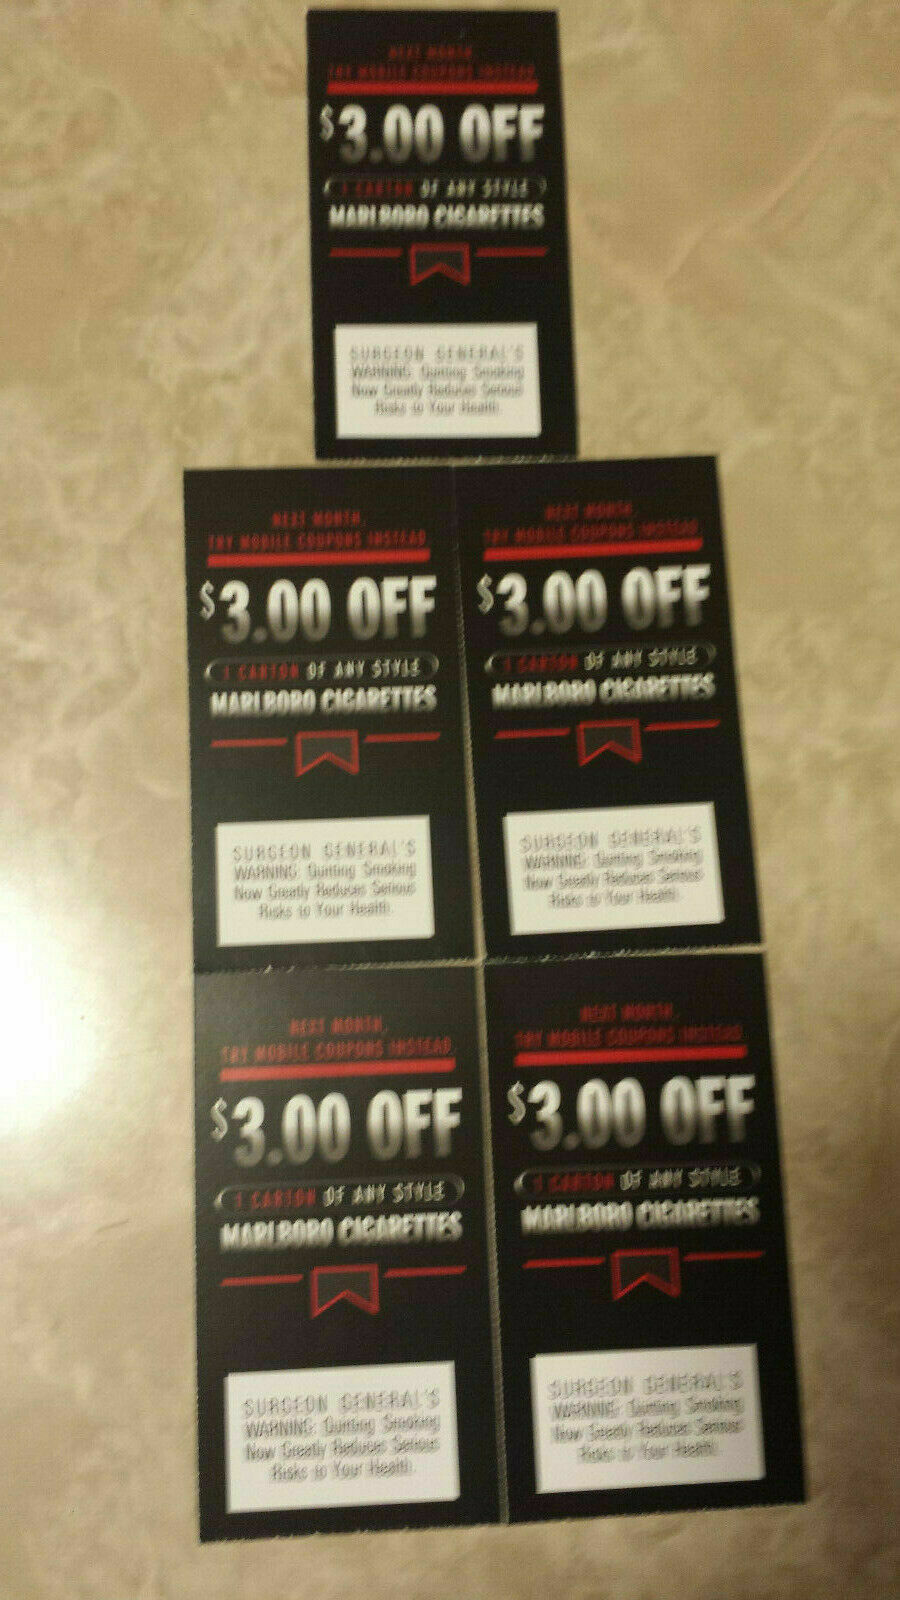 5 MARLBORO CIGARETTE COUPONS 3.00 OFF A CARTON ANY STYLE TOTAL 15.00 UNEXPIRED - $9.00